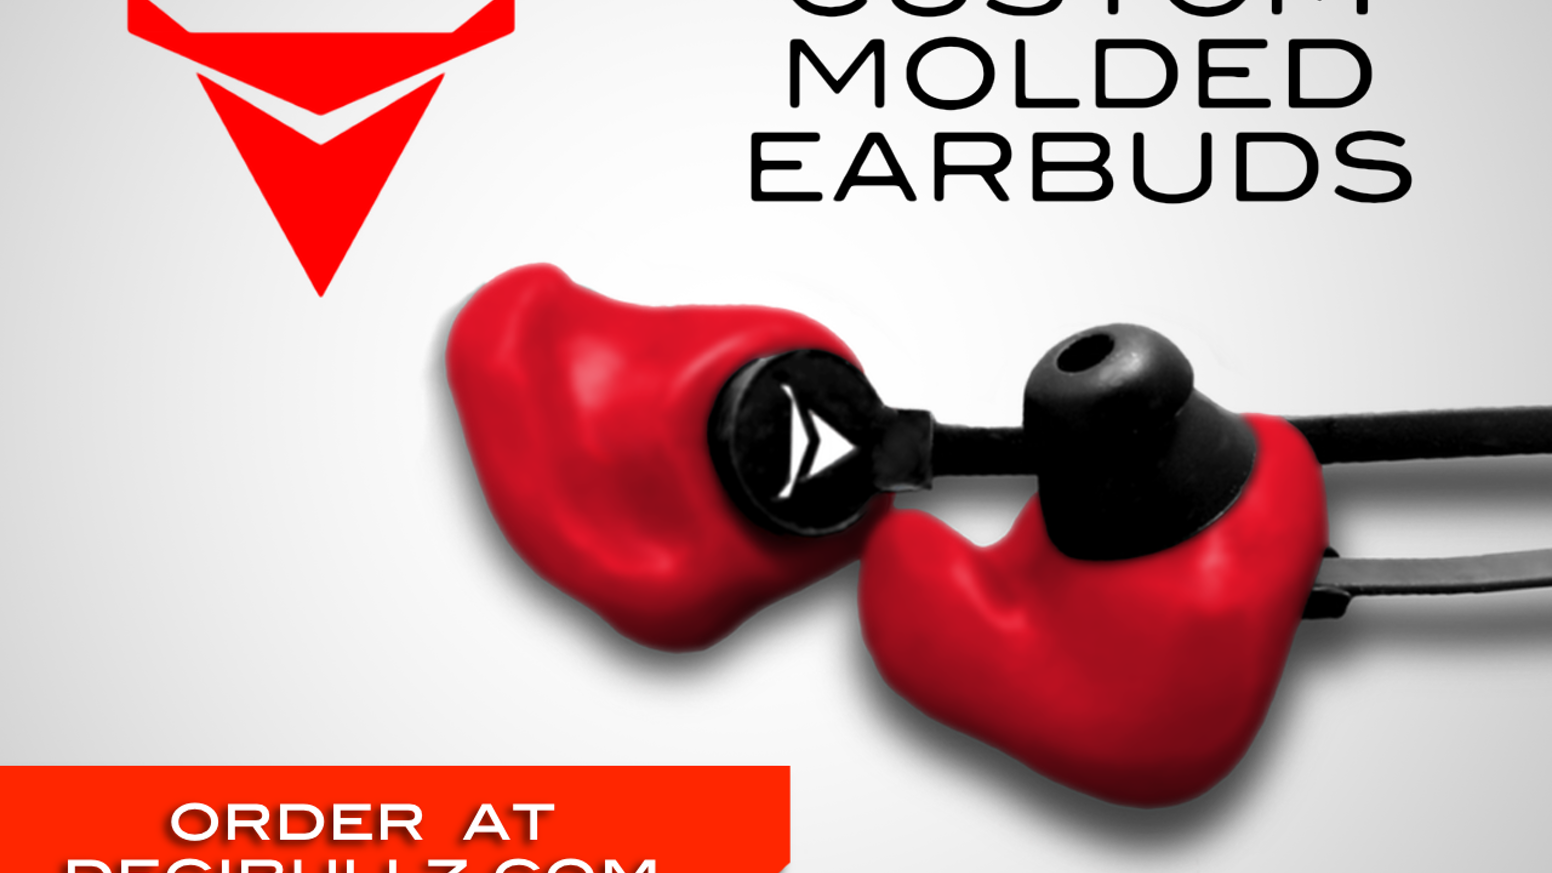 Earphones easily and quickly molded to the unique shape of your ears for a perfect-fitting earphone that sounds great and stays put.